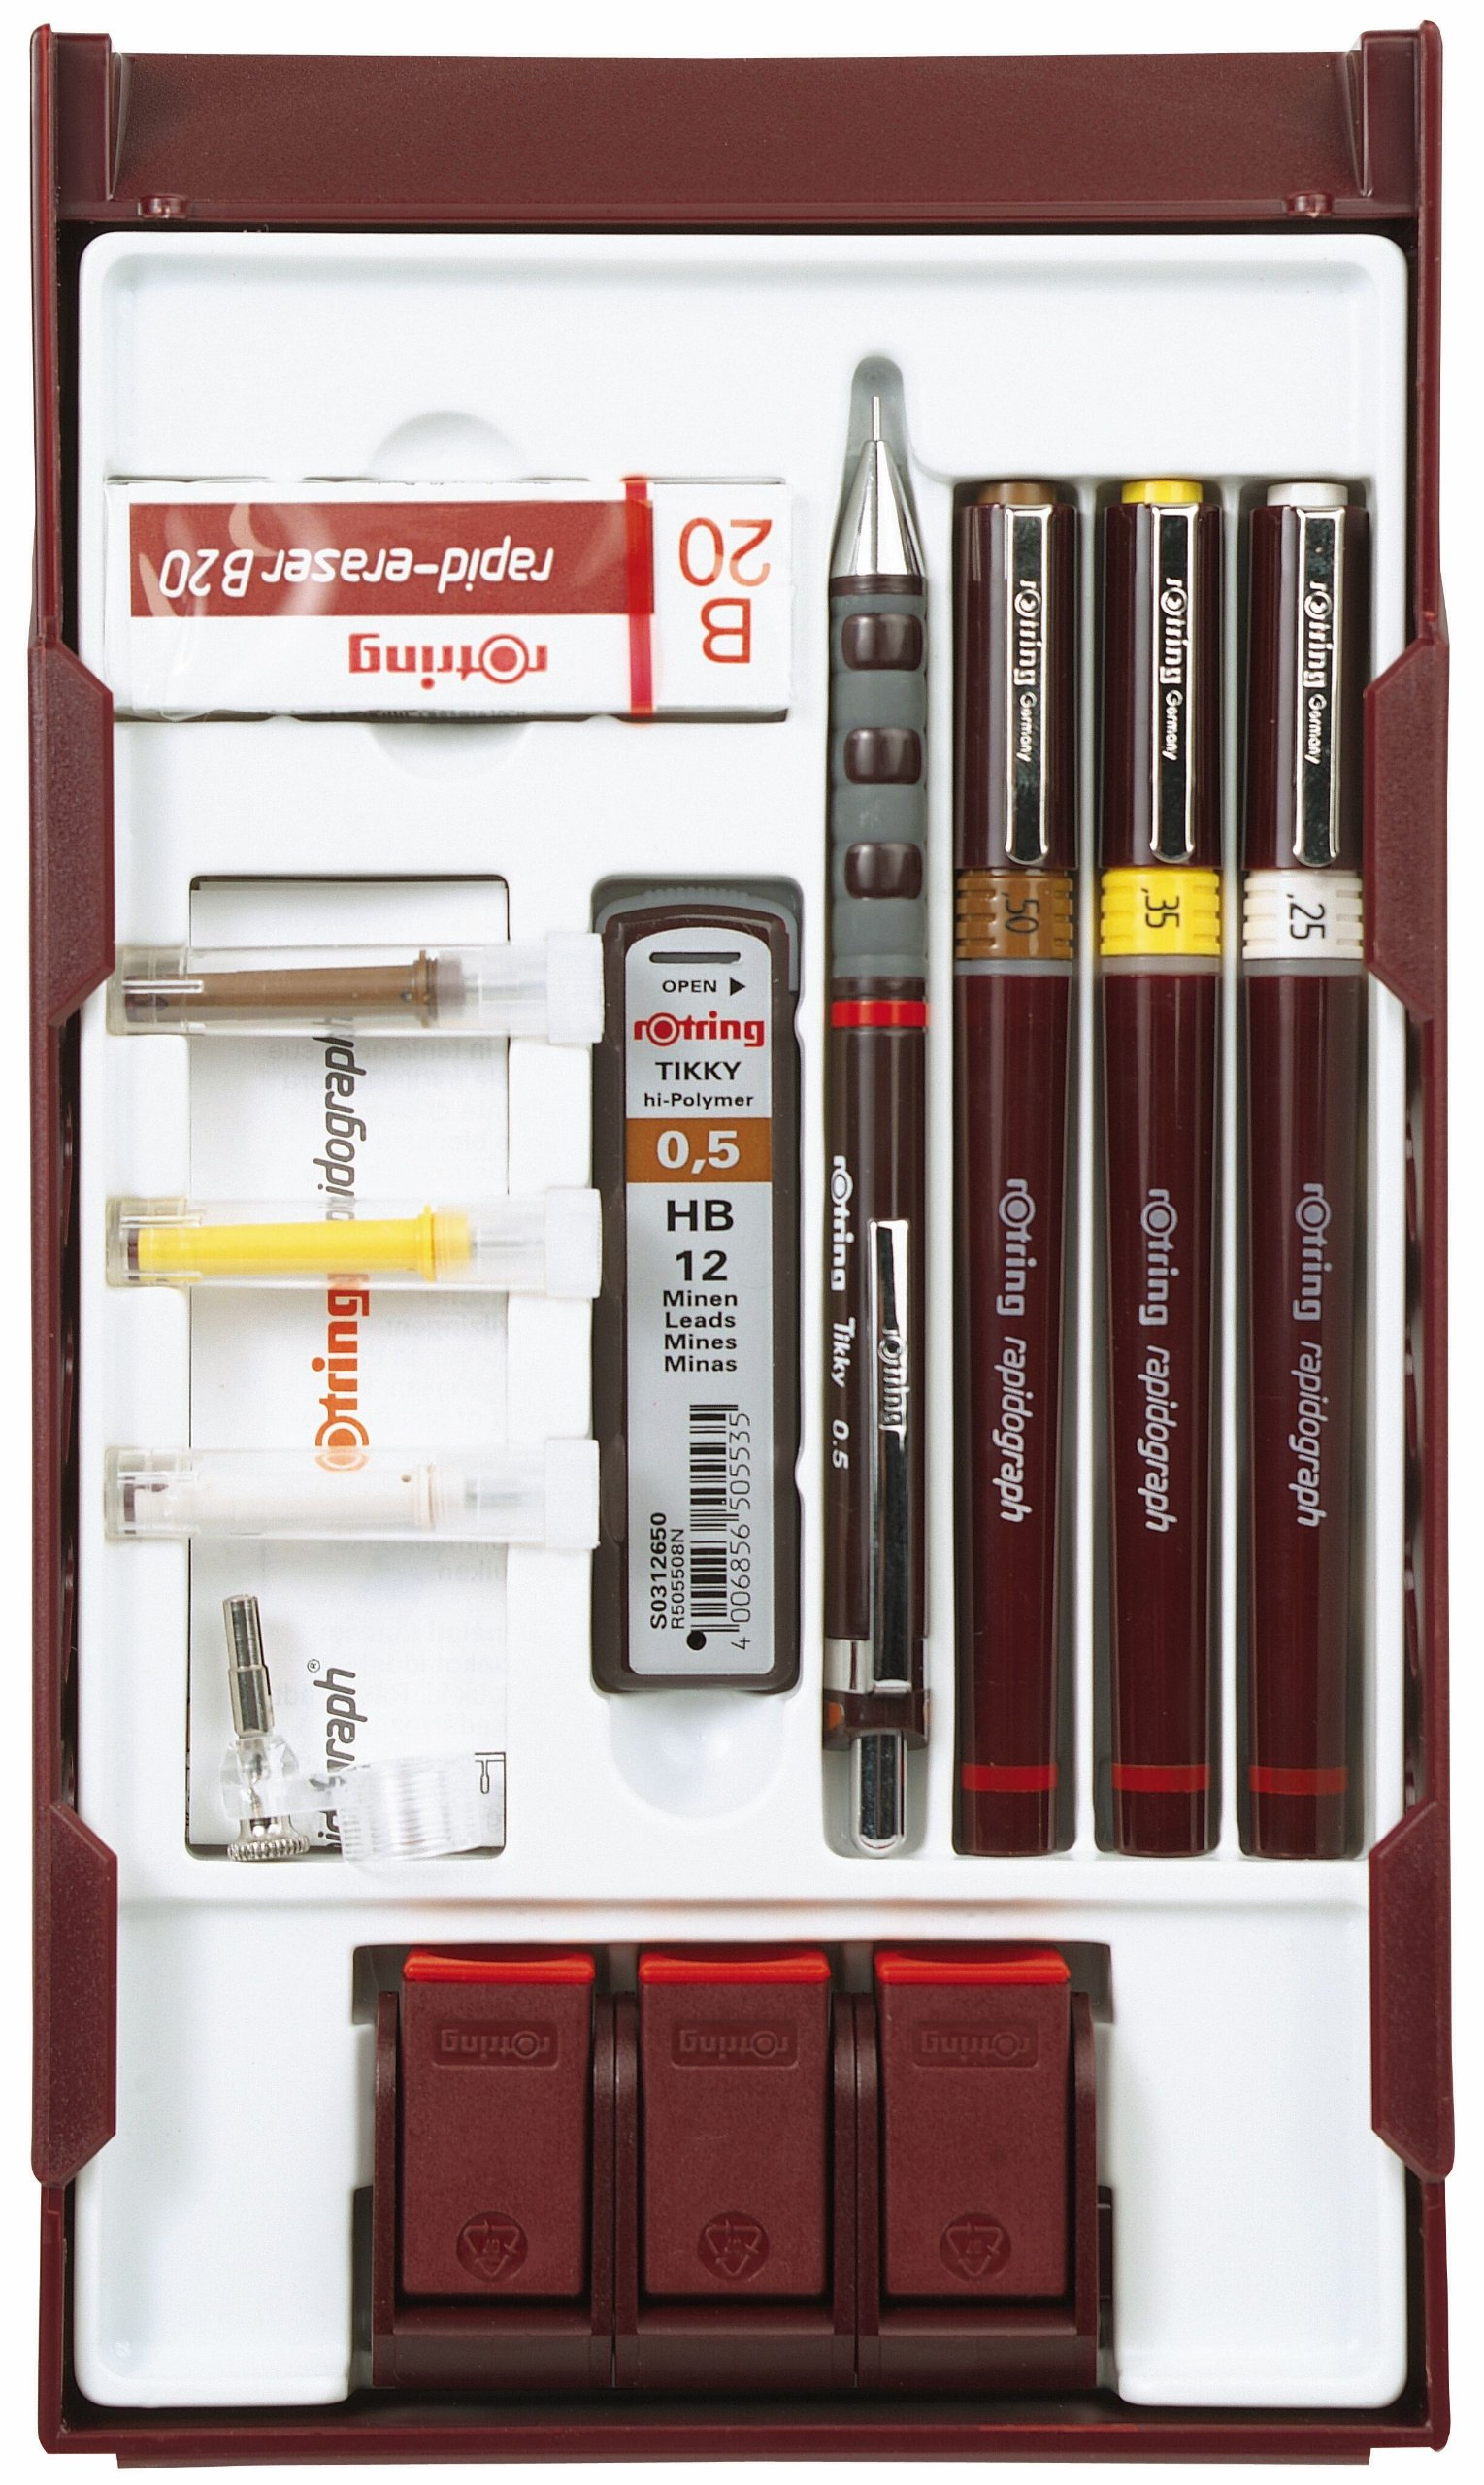 rOtring Rapidograph Technical Drawing Pen College Pen Station Set, 3 Pens with Line Widths of 0.25mm to 0.5mm, Brown (S0699530) by Rotring